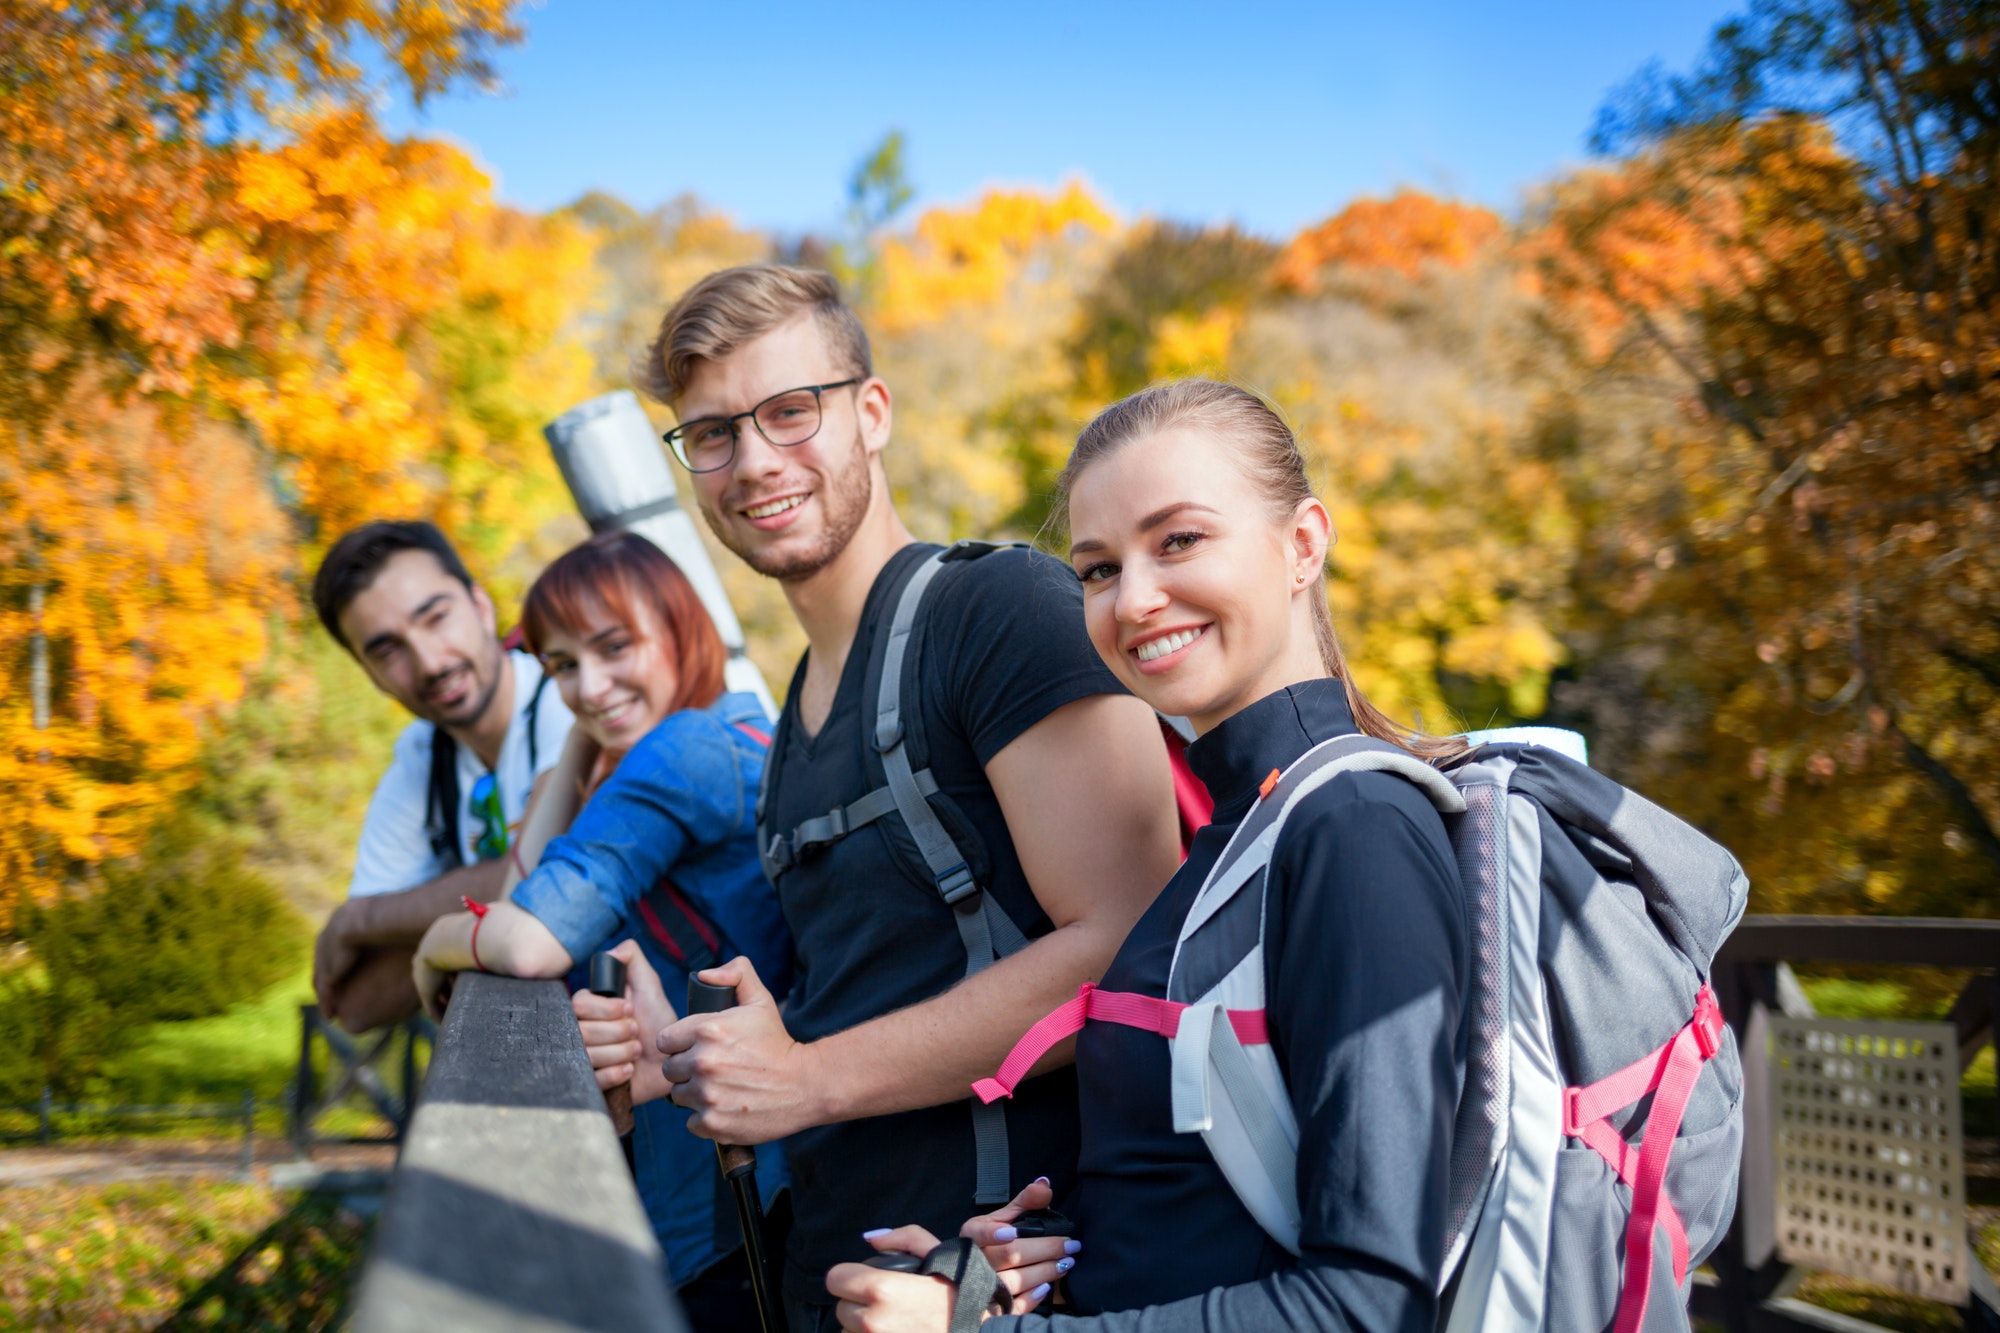 Group of friends on tourist trip, authentic life